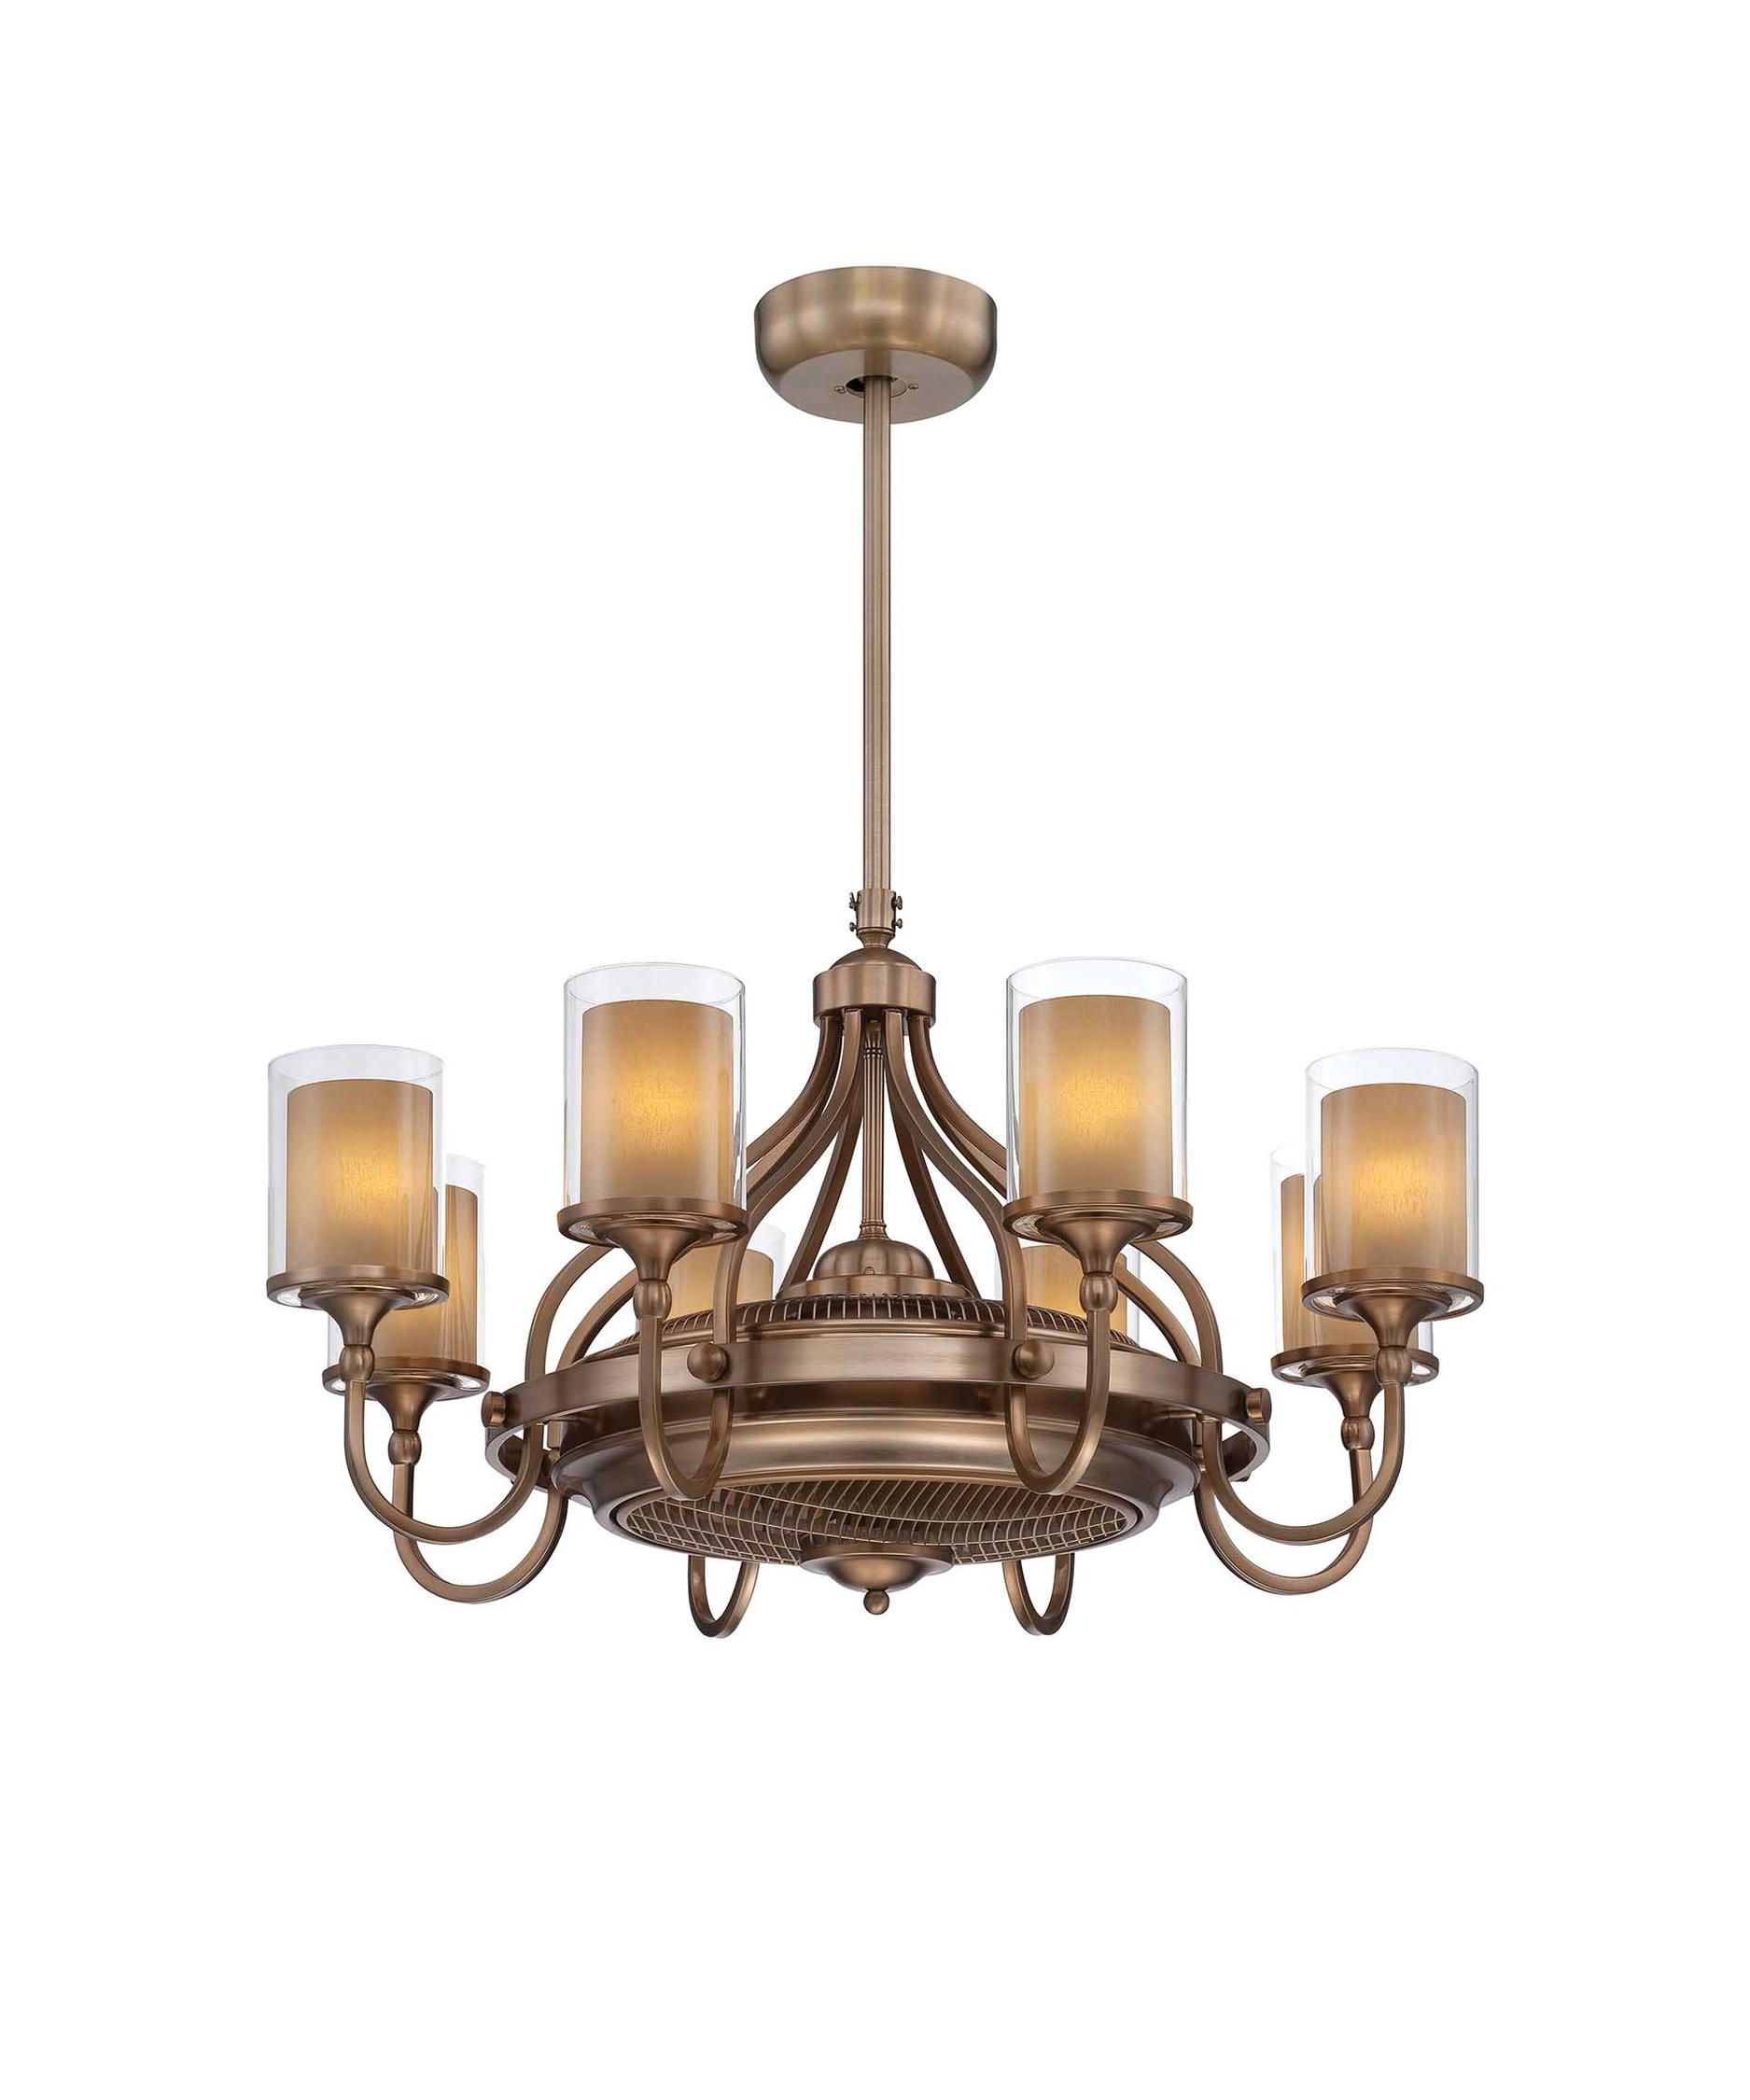 Savoy House Etesian 35 Inch Chandelier Ceiling Fan | Capitol ...:Shown in Burnished Russett finish and Clear Outer-Cream Inner glass,Lighting